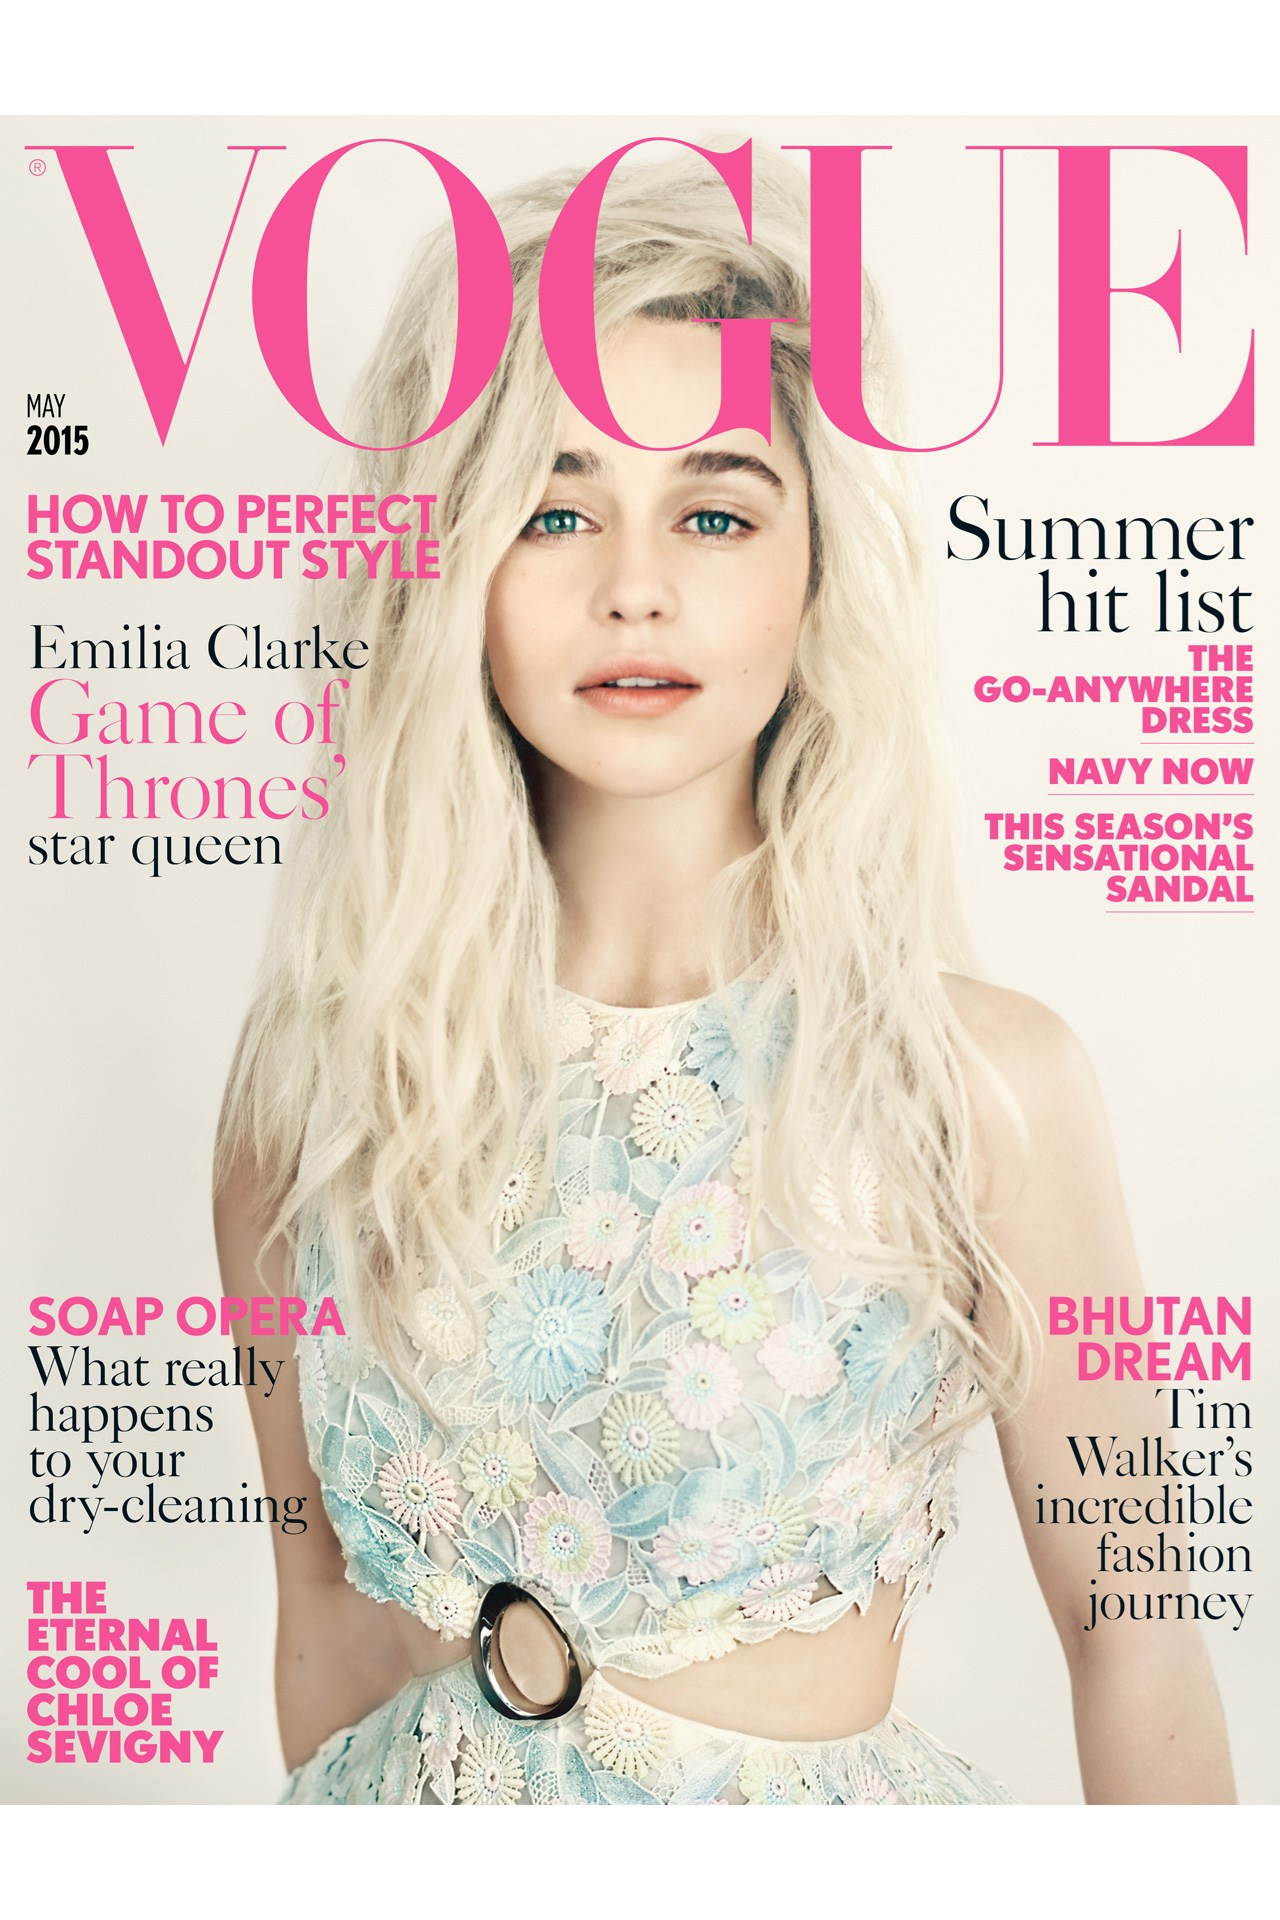 Vogue Magazine Uk May 2015 Issue: What's On: VOGUE 100